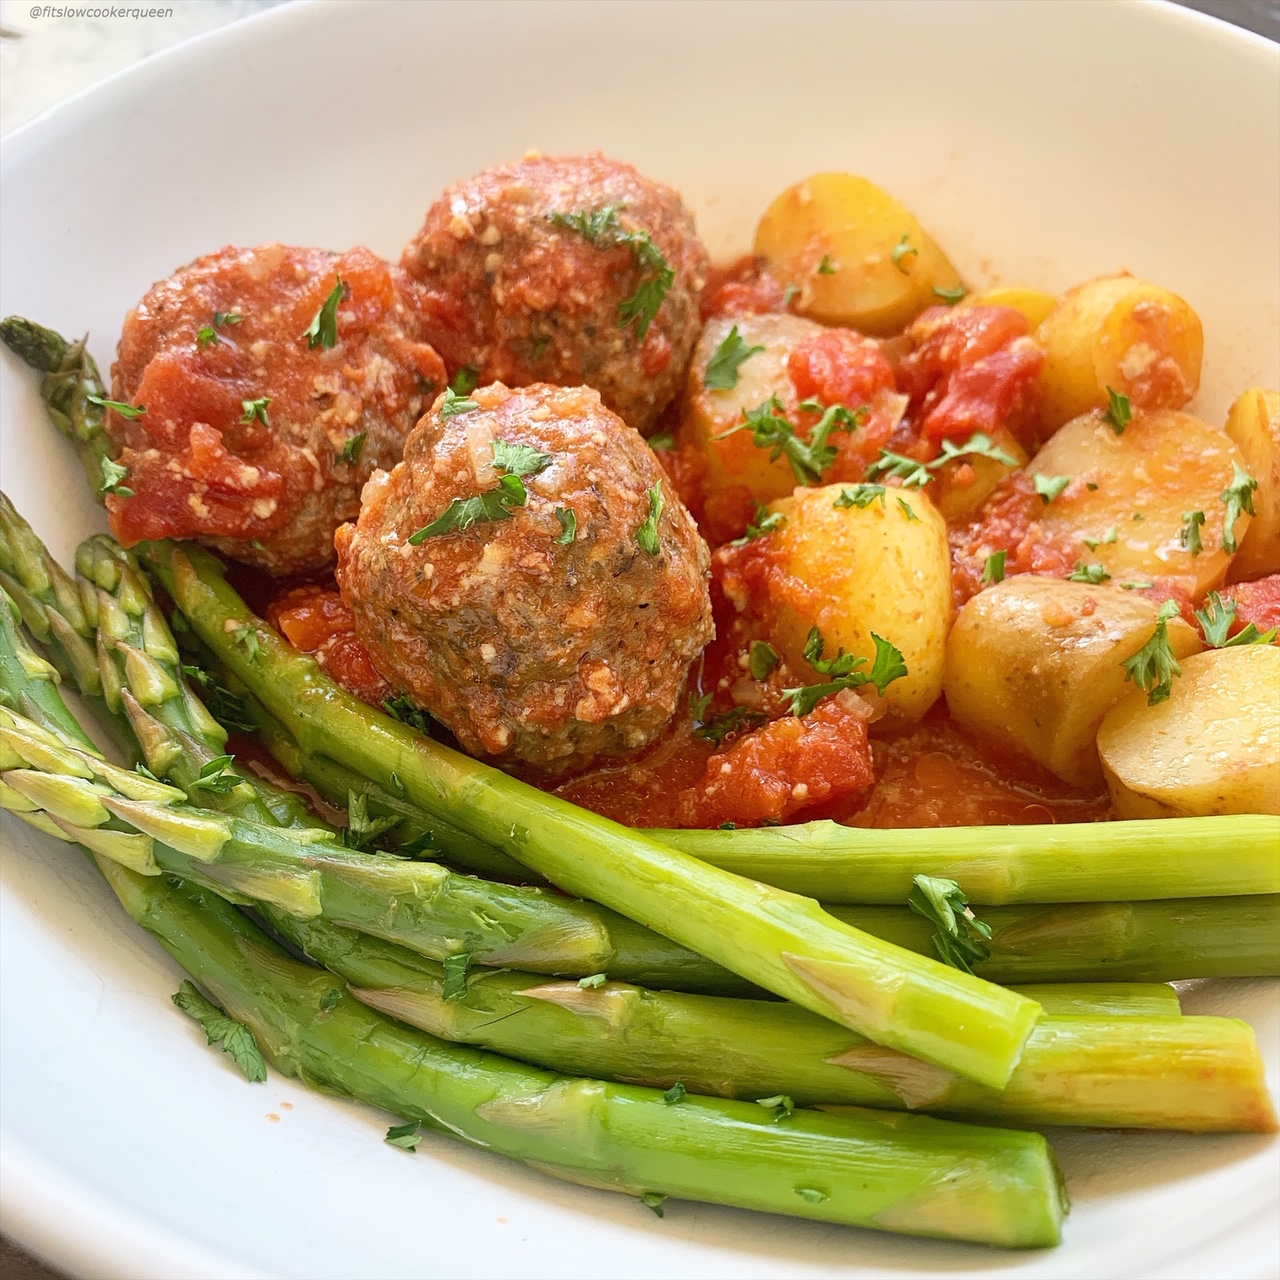 Meatballs, potatoes, and vegetables cook together in this easy & healthy Italian dinner. Cook this one-pot meal in your slow cooker or Instant Pot.